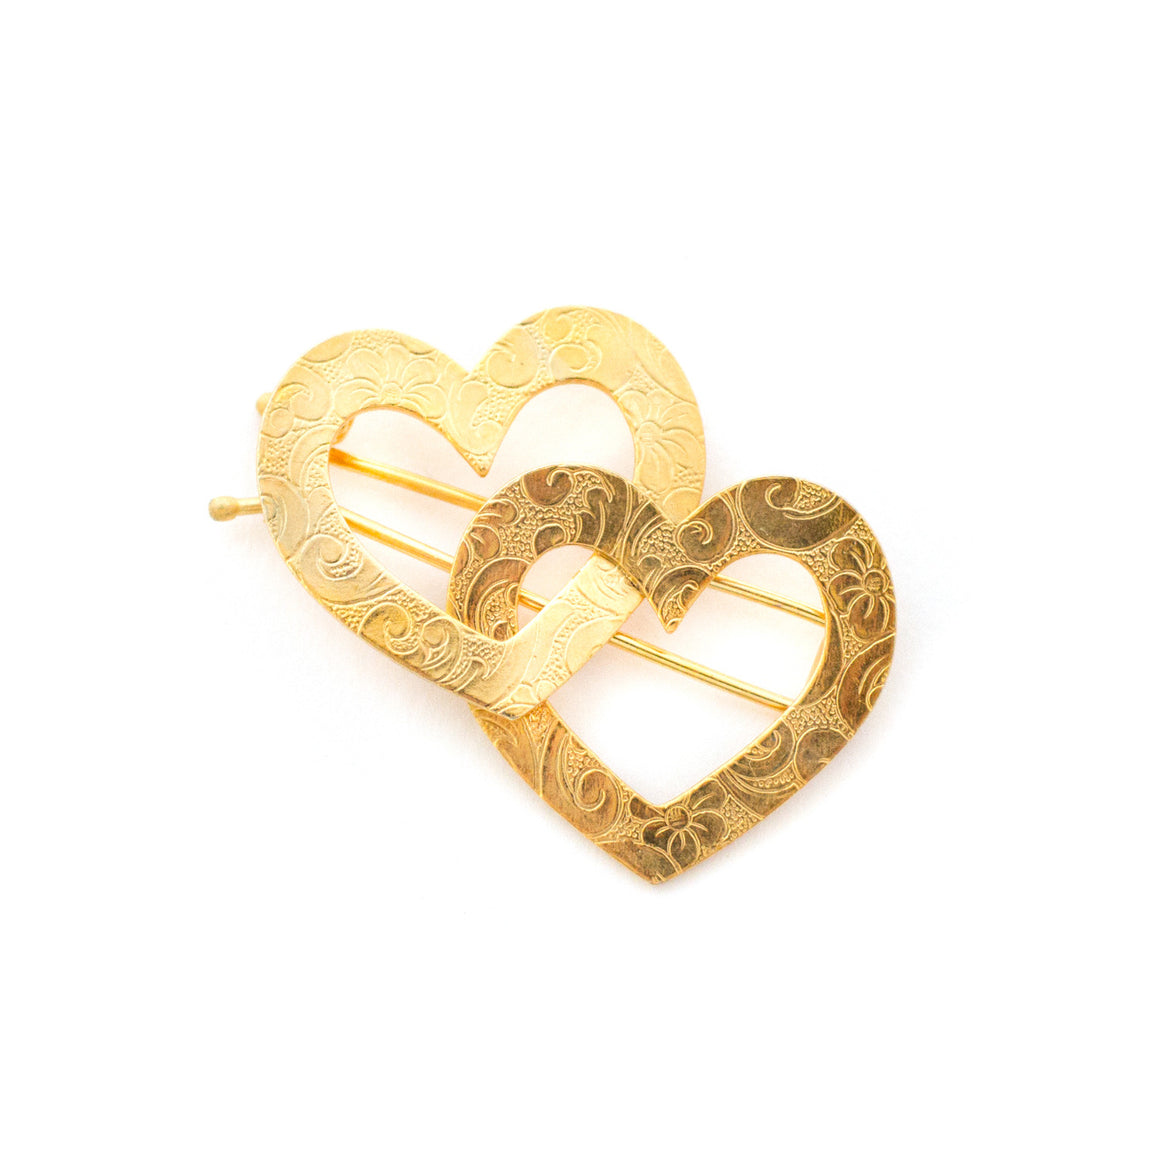 metal gold heart hair clip - embellishment - sweetheart